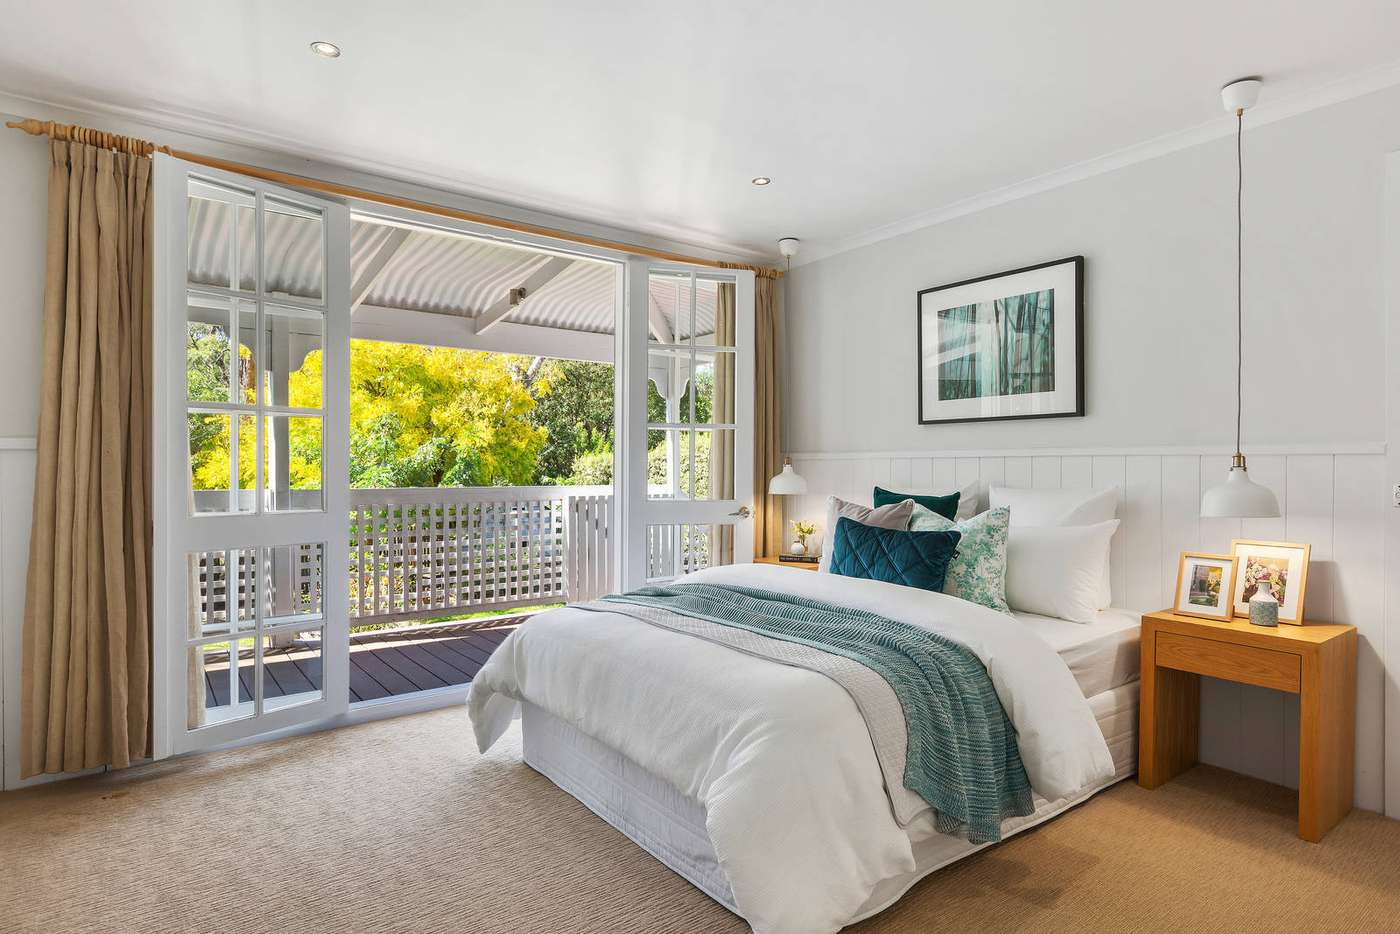 Fifth view of Homely house listing, 7 Mason Street, Mount Eliza VIC 3930